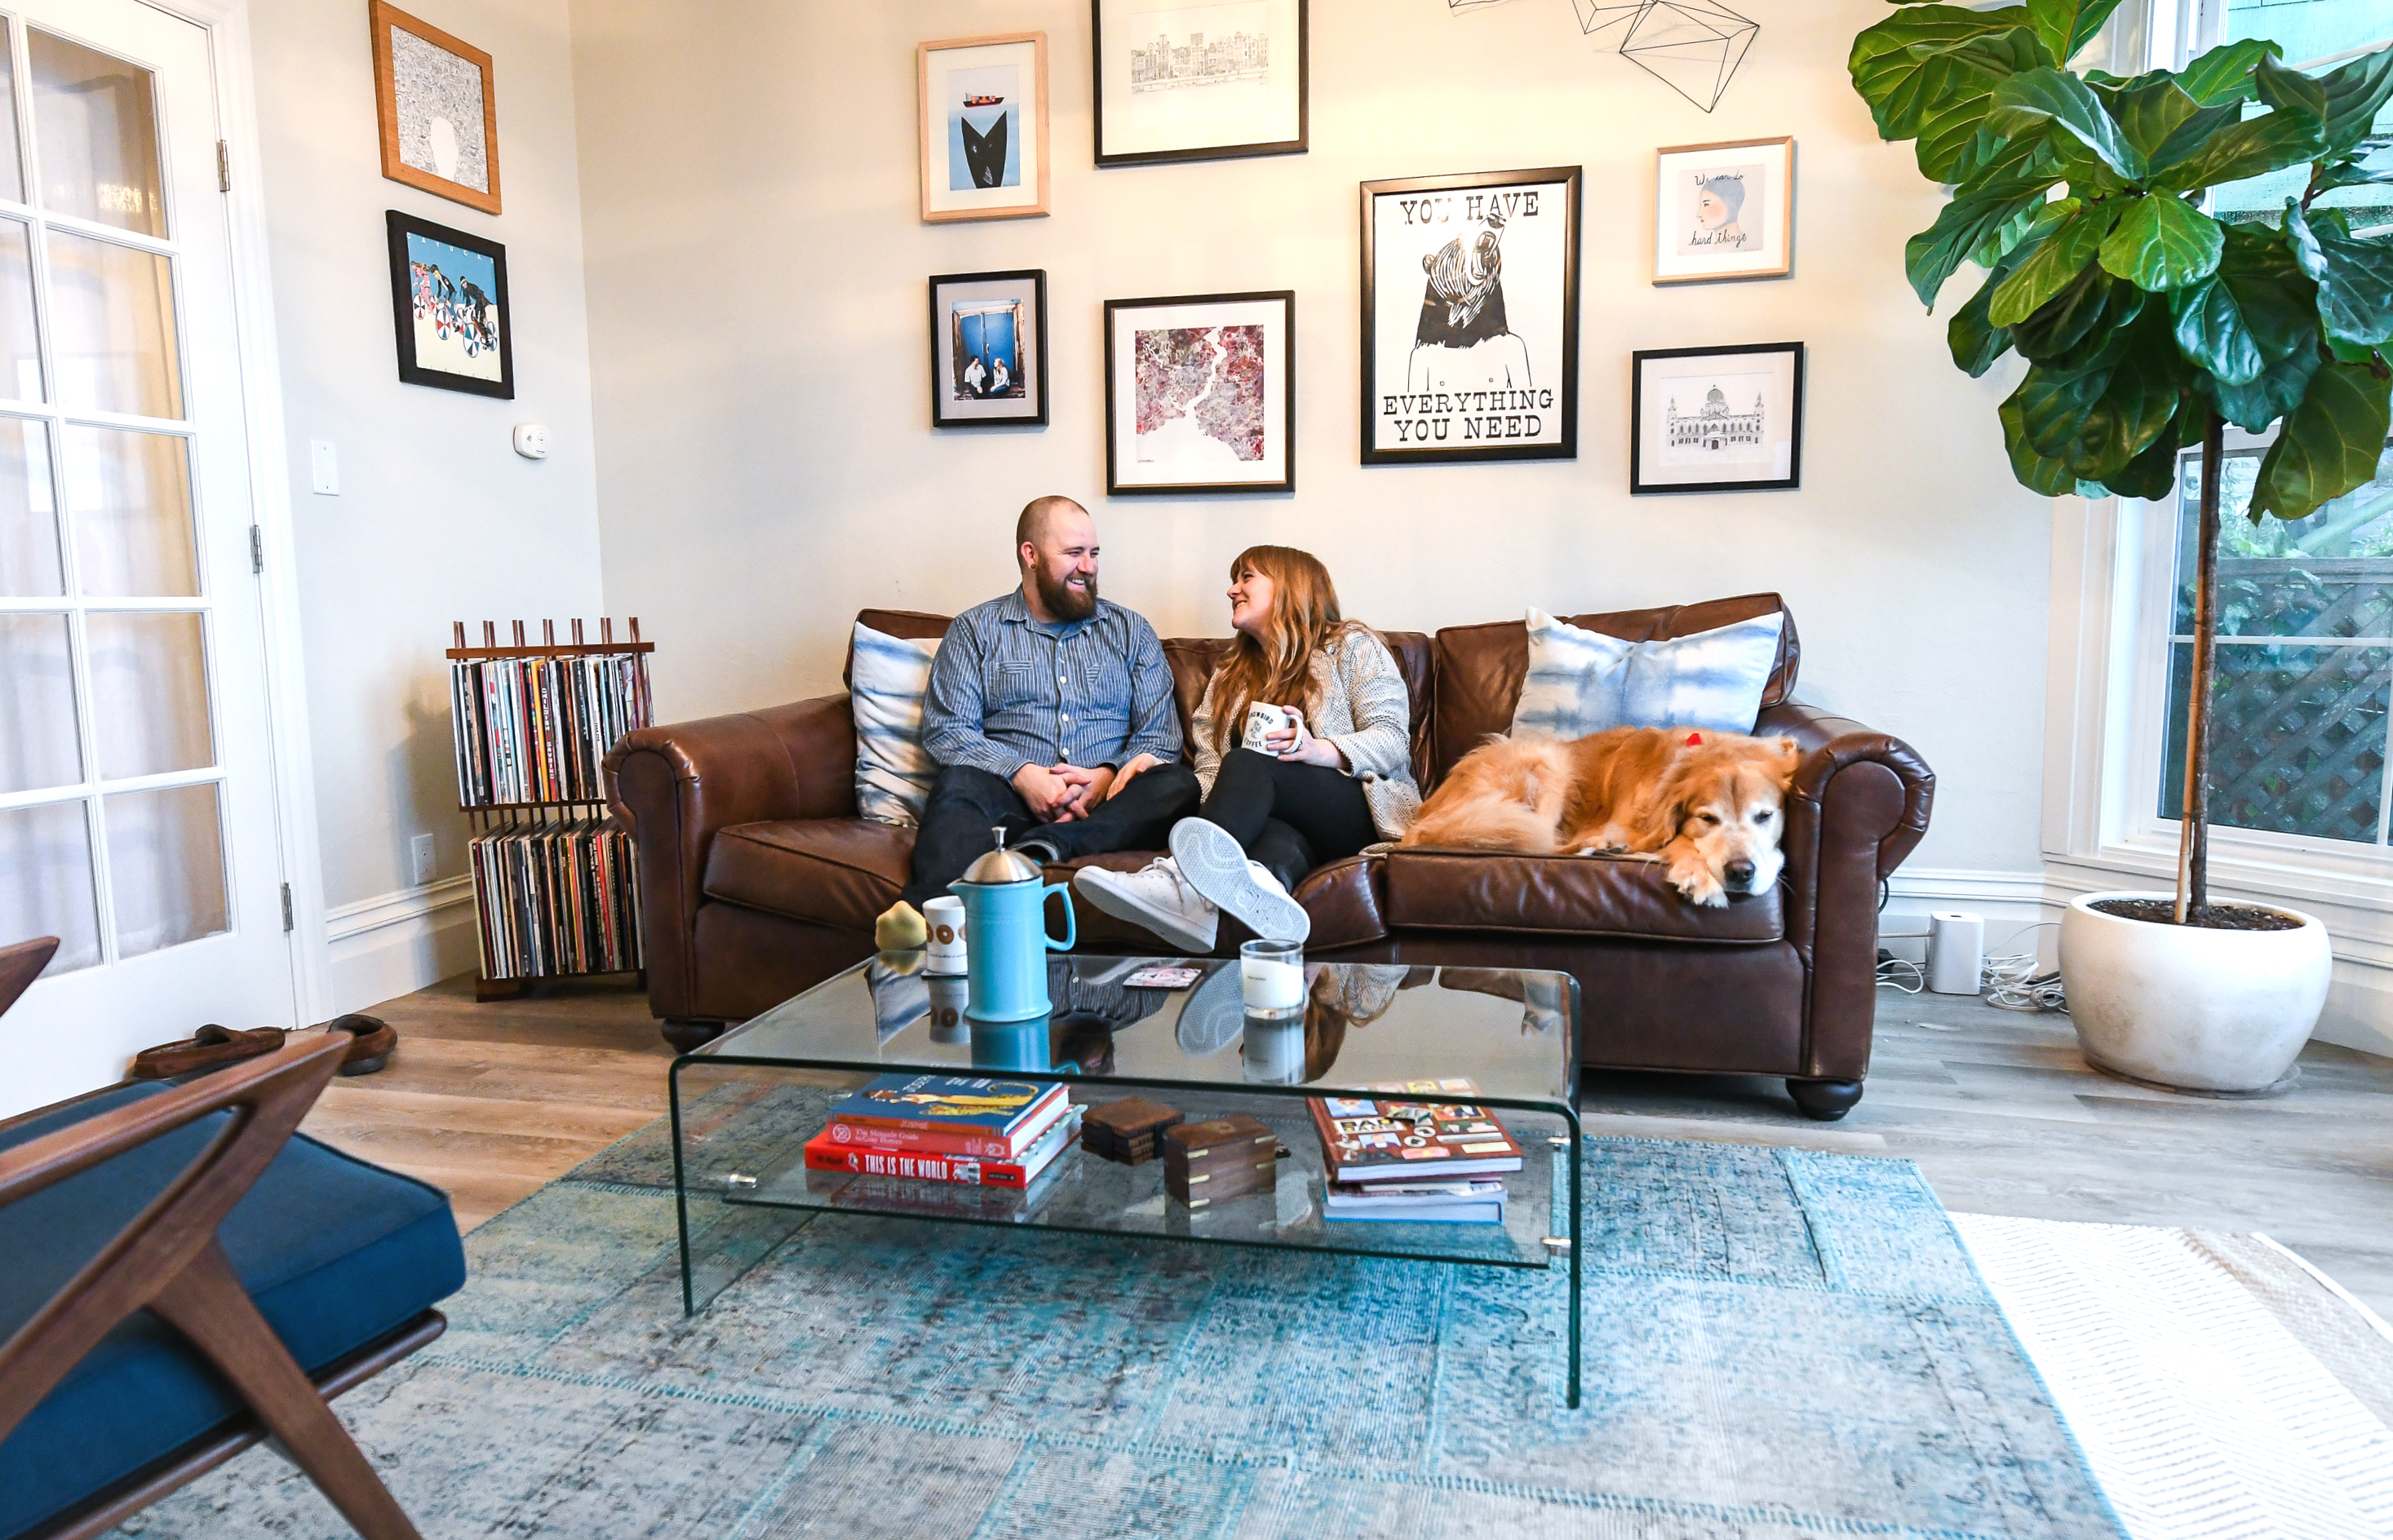 Smart home tech for renters: San Francisco couple shows how it's done